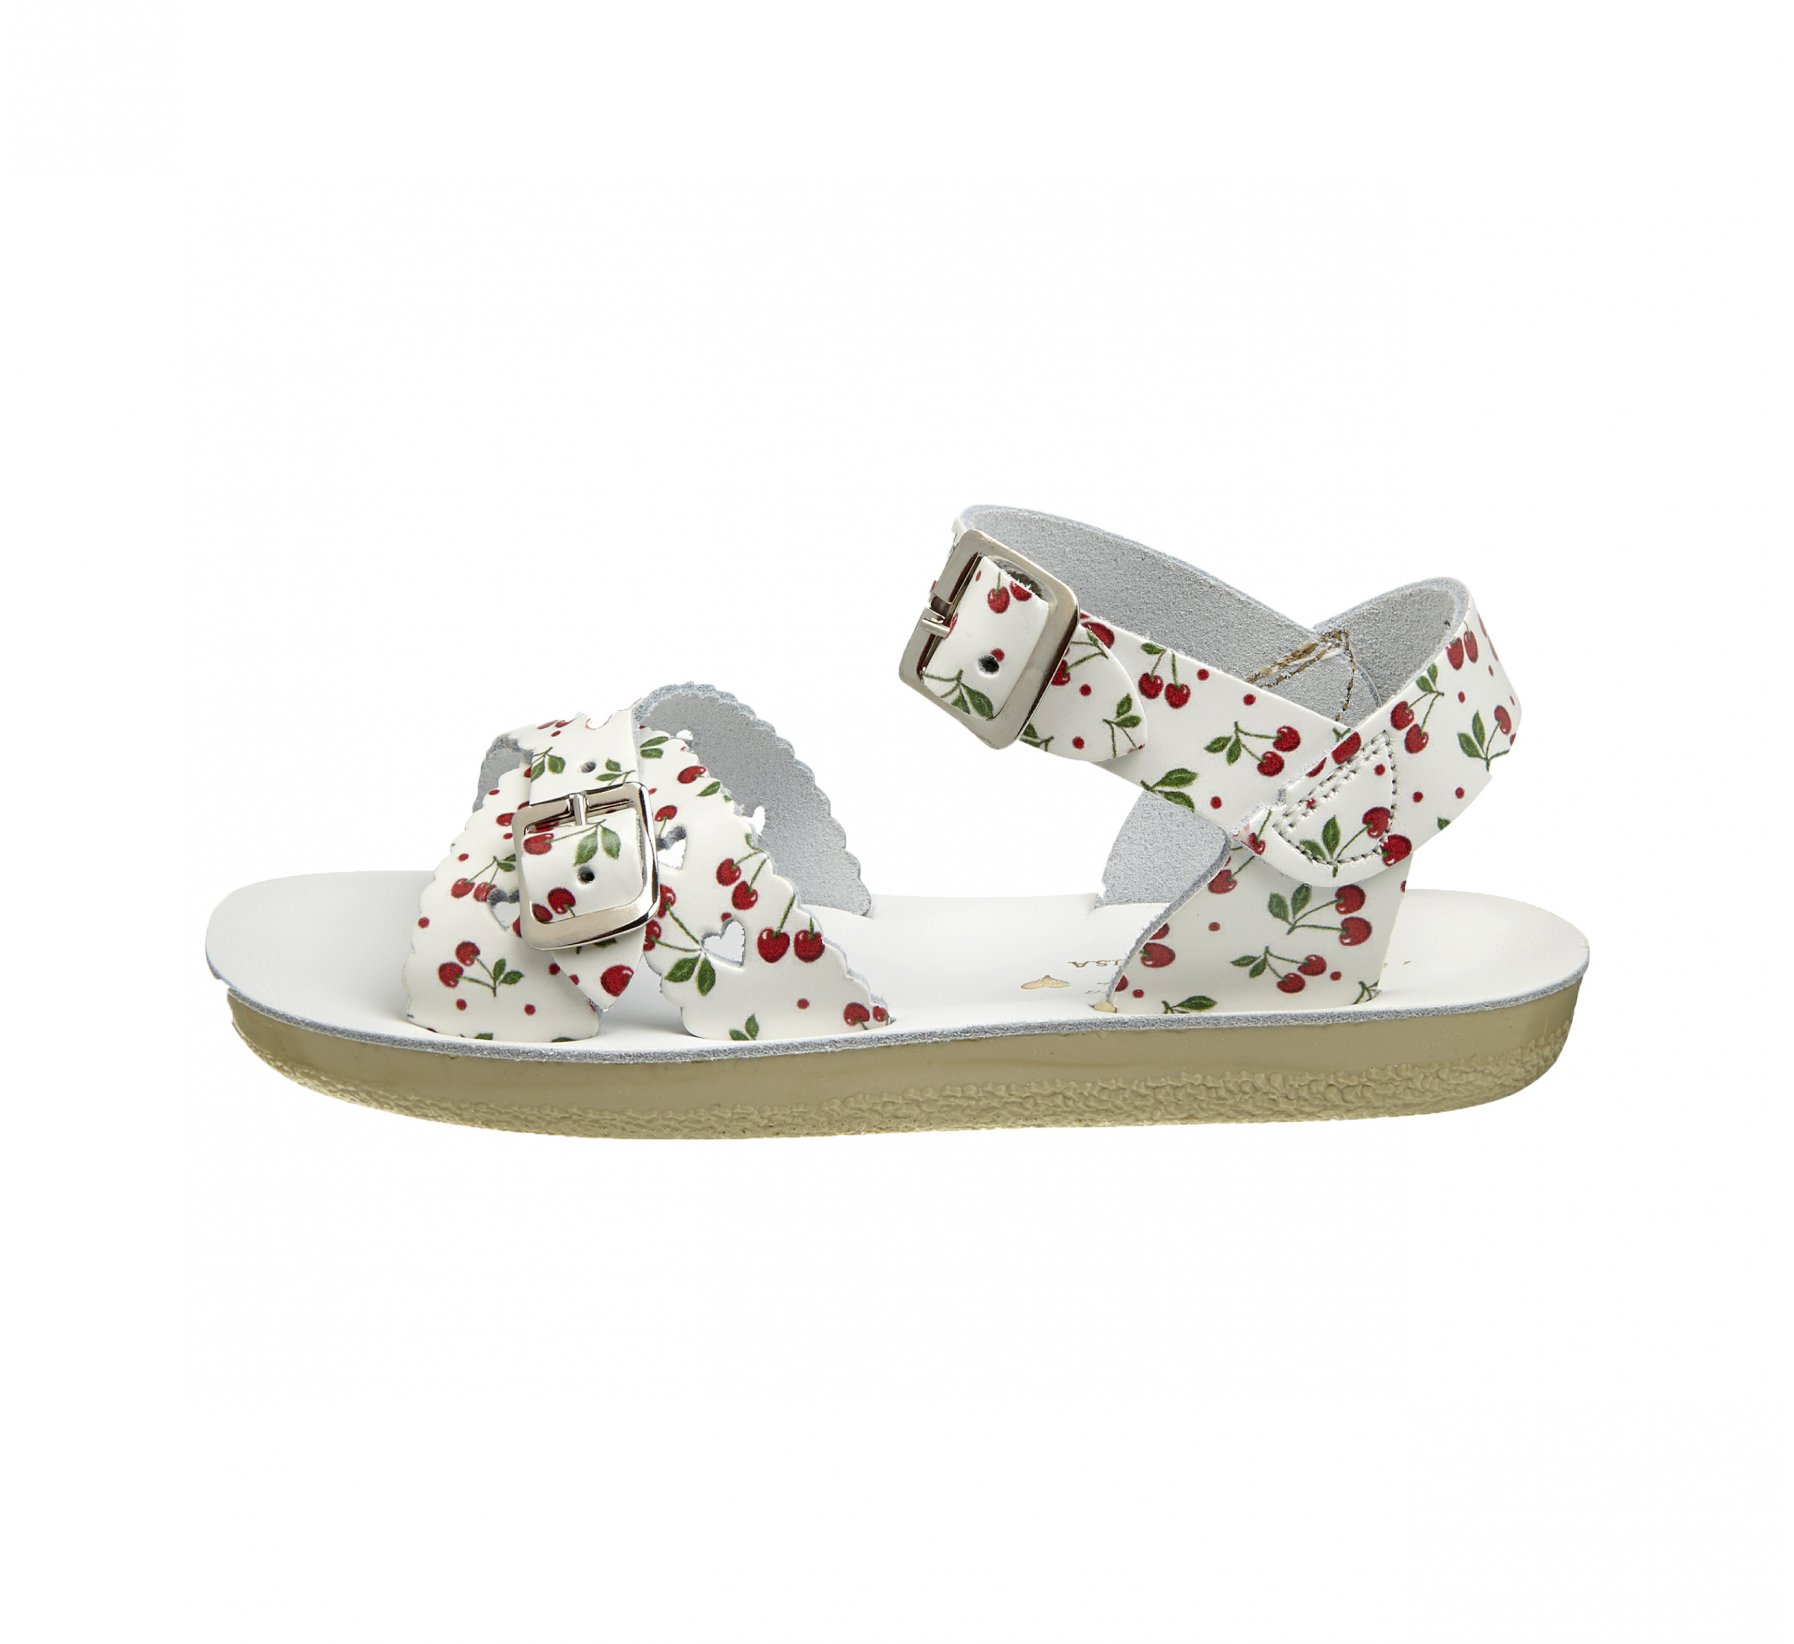 Sweetheart Ceri - Salt Water Sandals